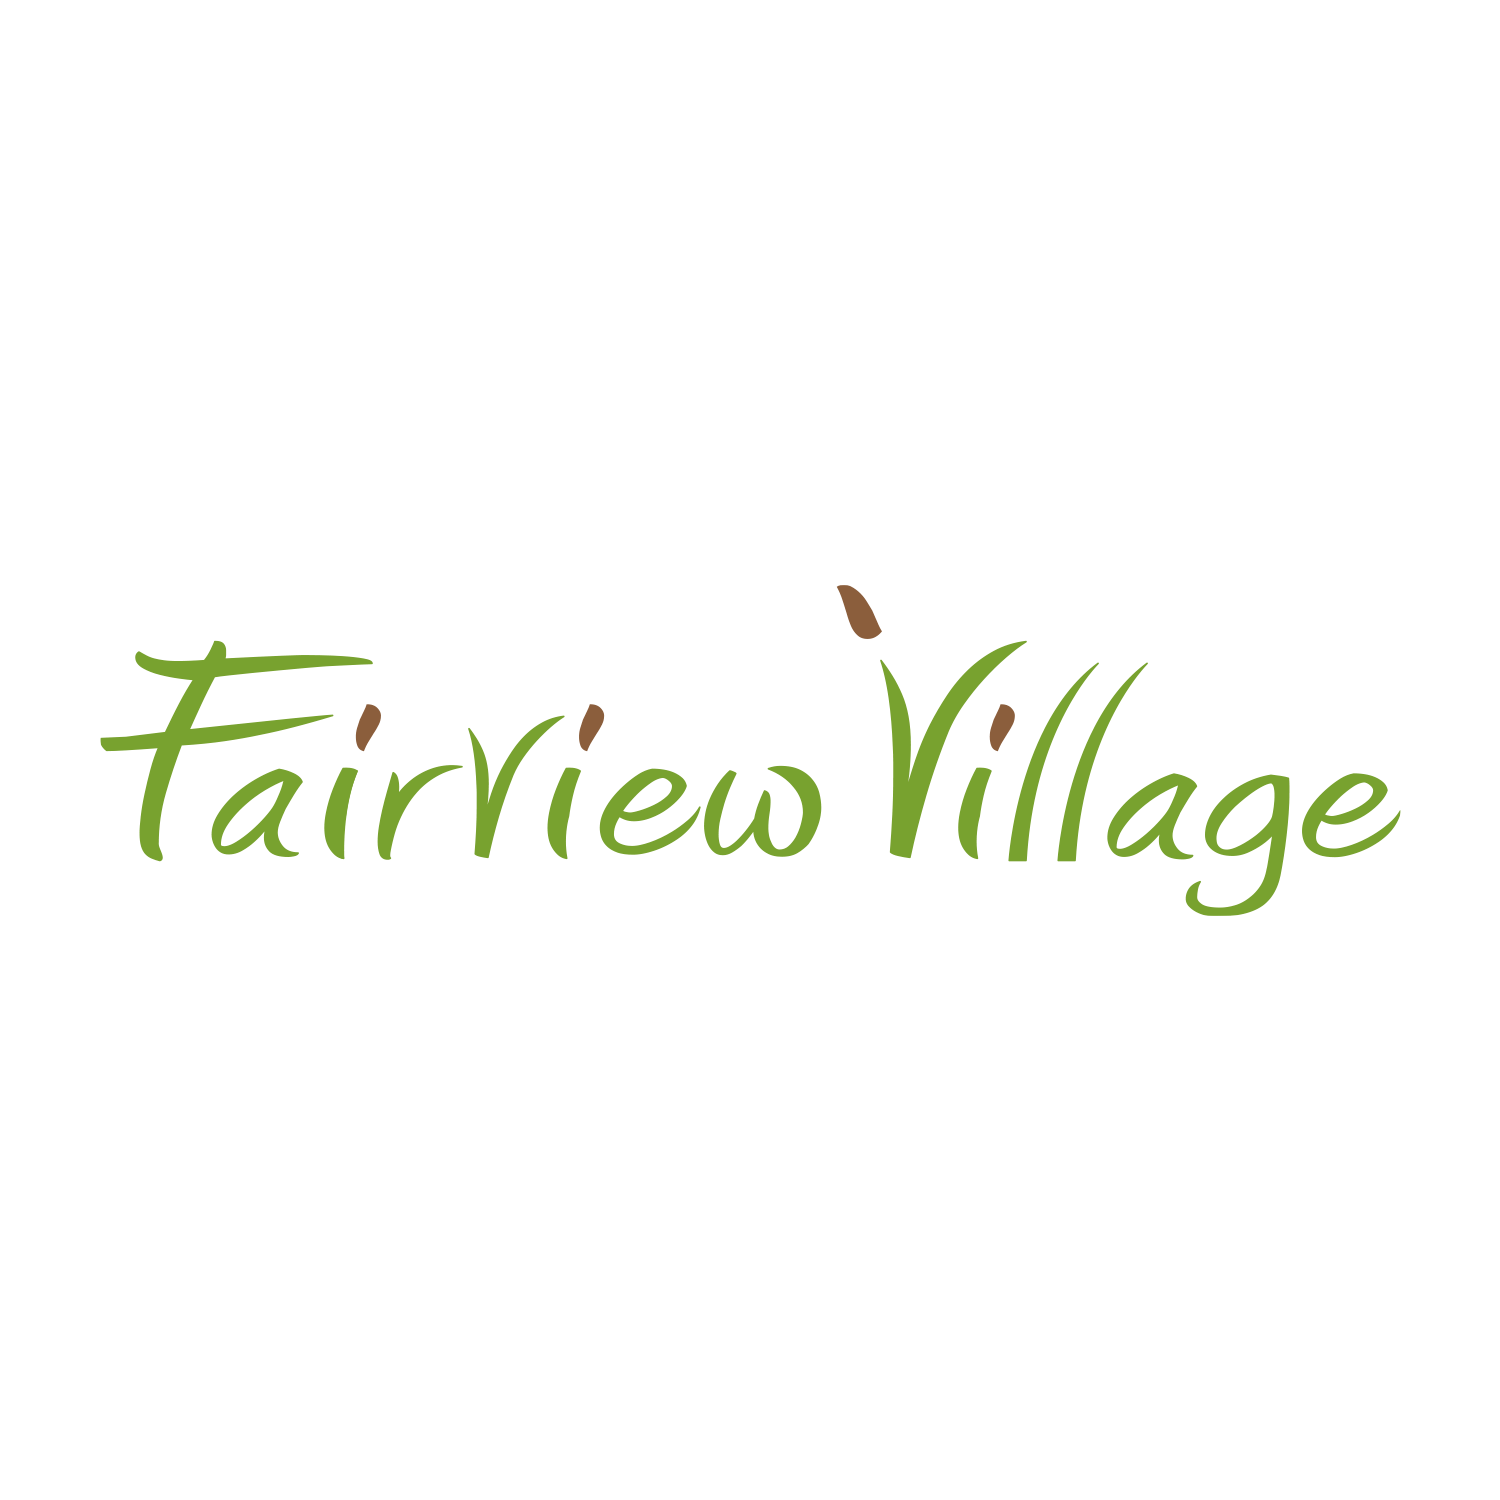 Fairview Village Logo Design - Windsor, CO  Real Estate Development